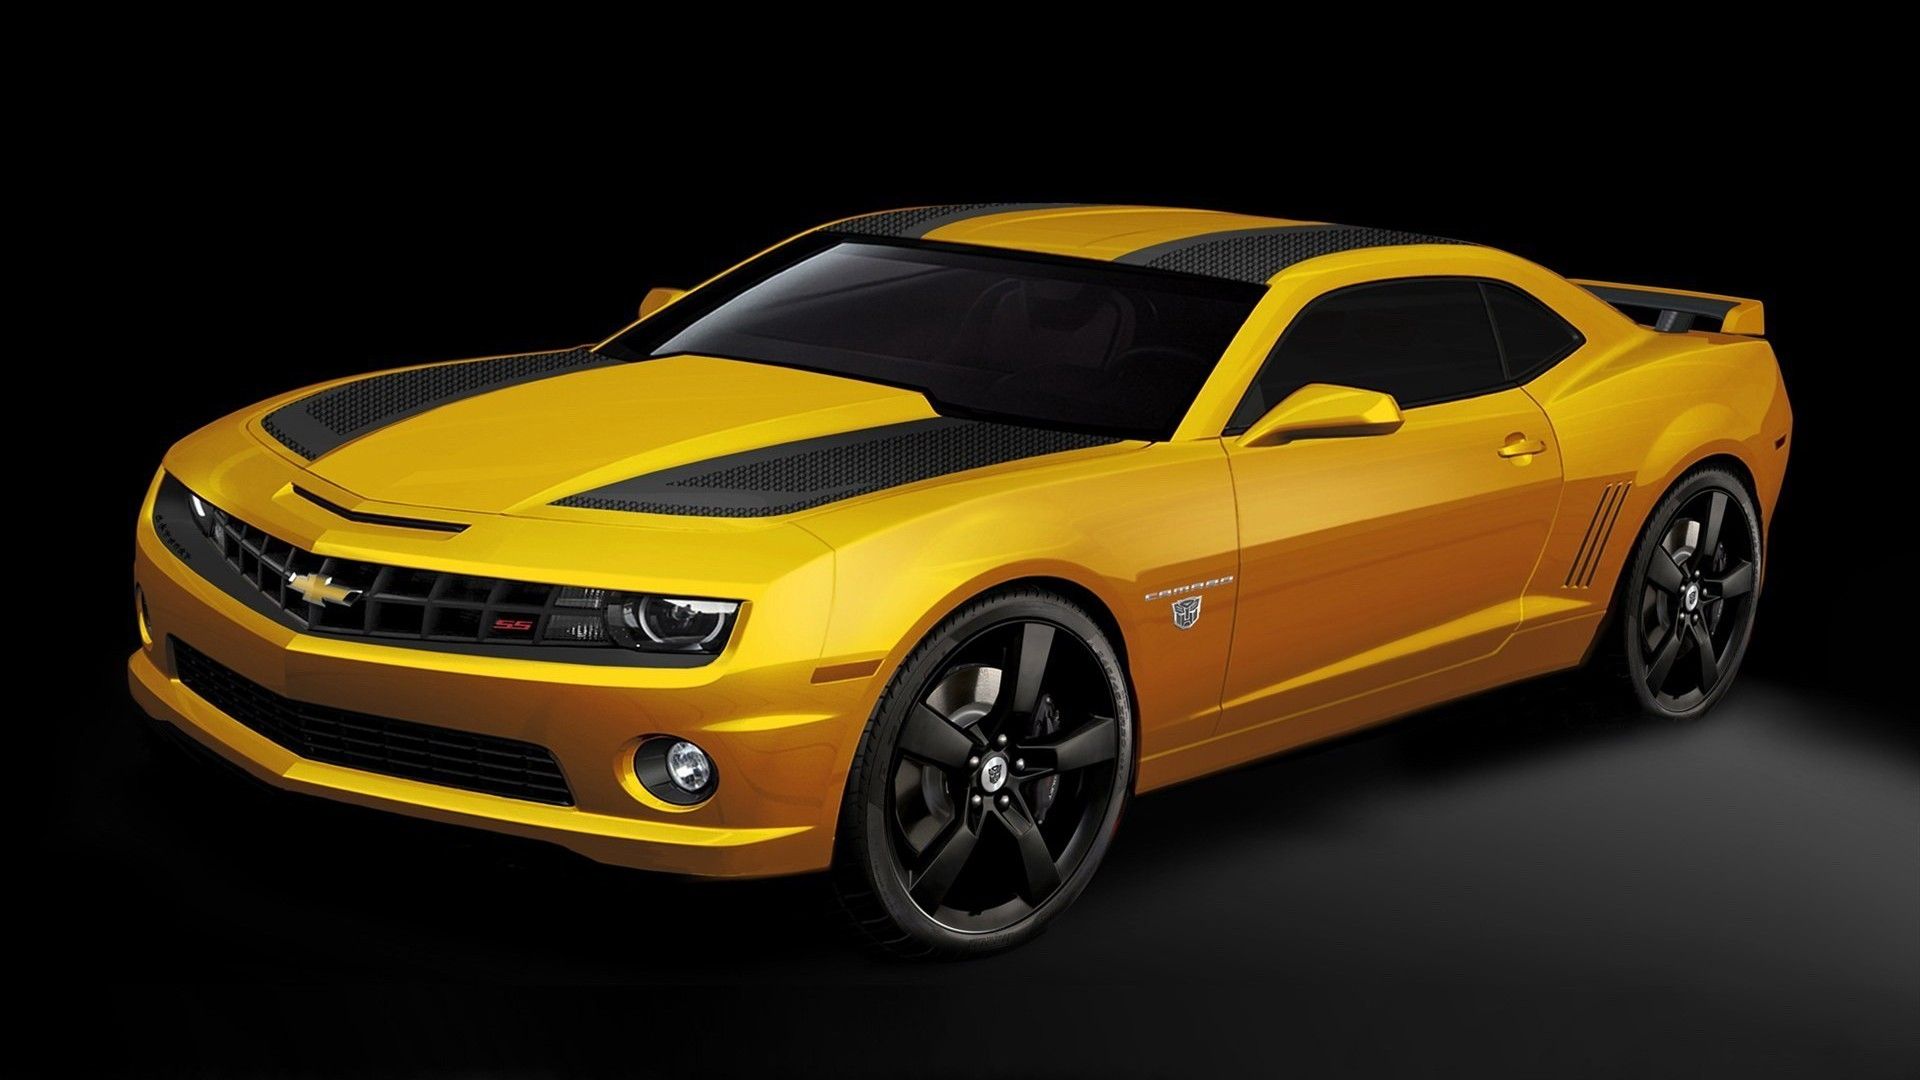 Bumblebee Chevrolet Camaro Ss Cars Wallpaper